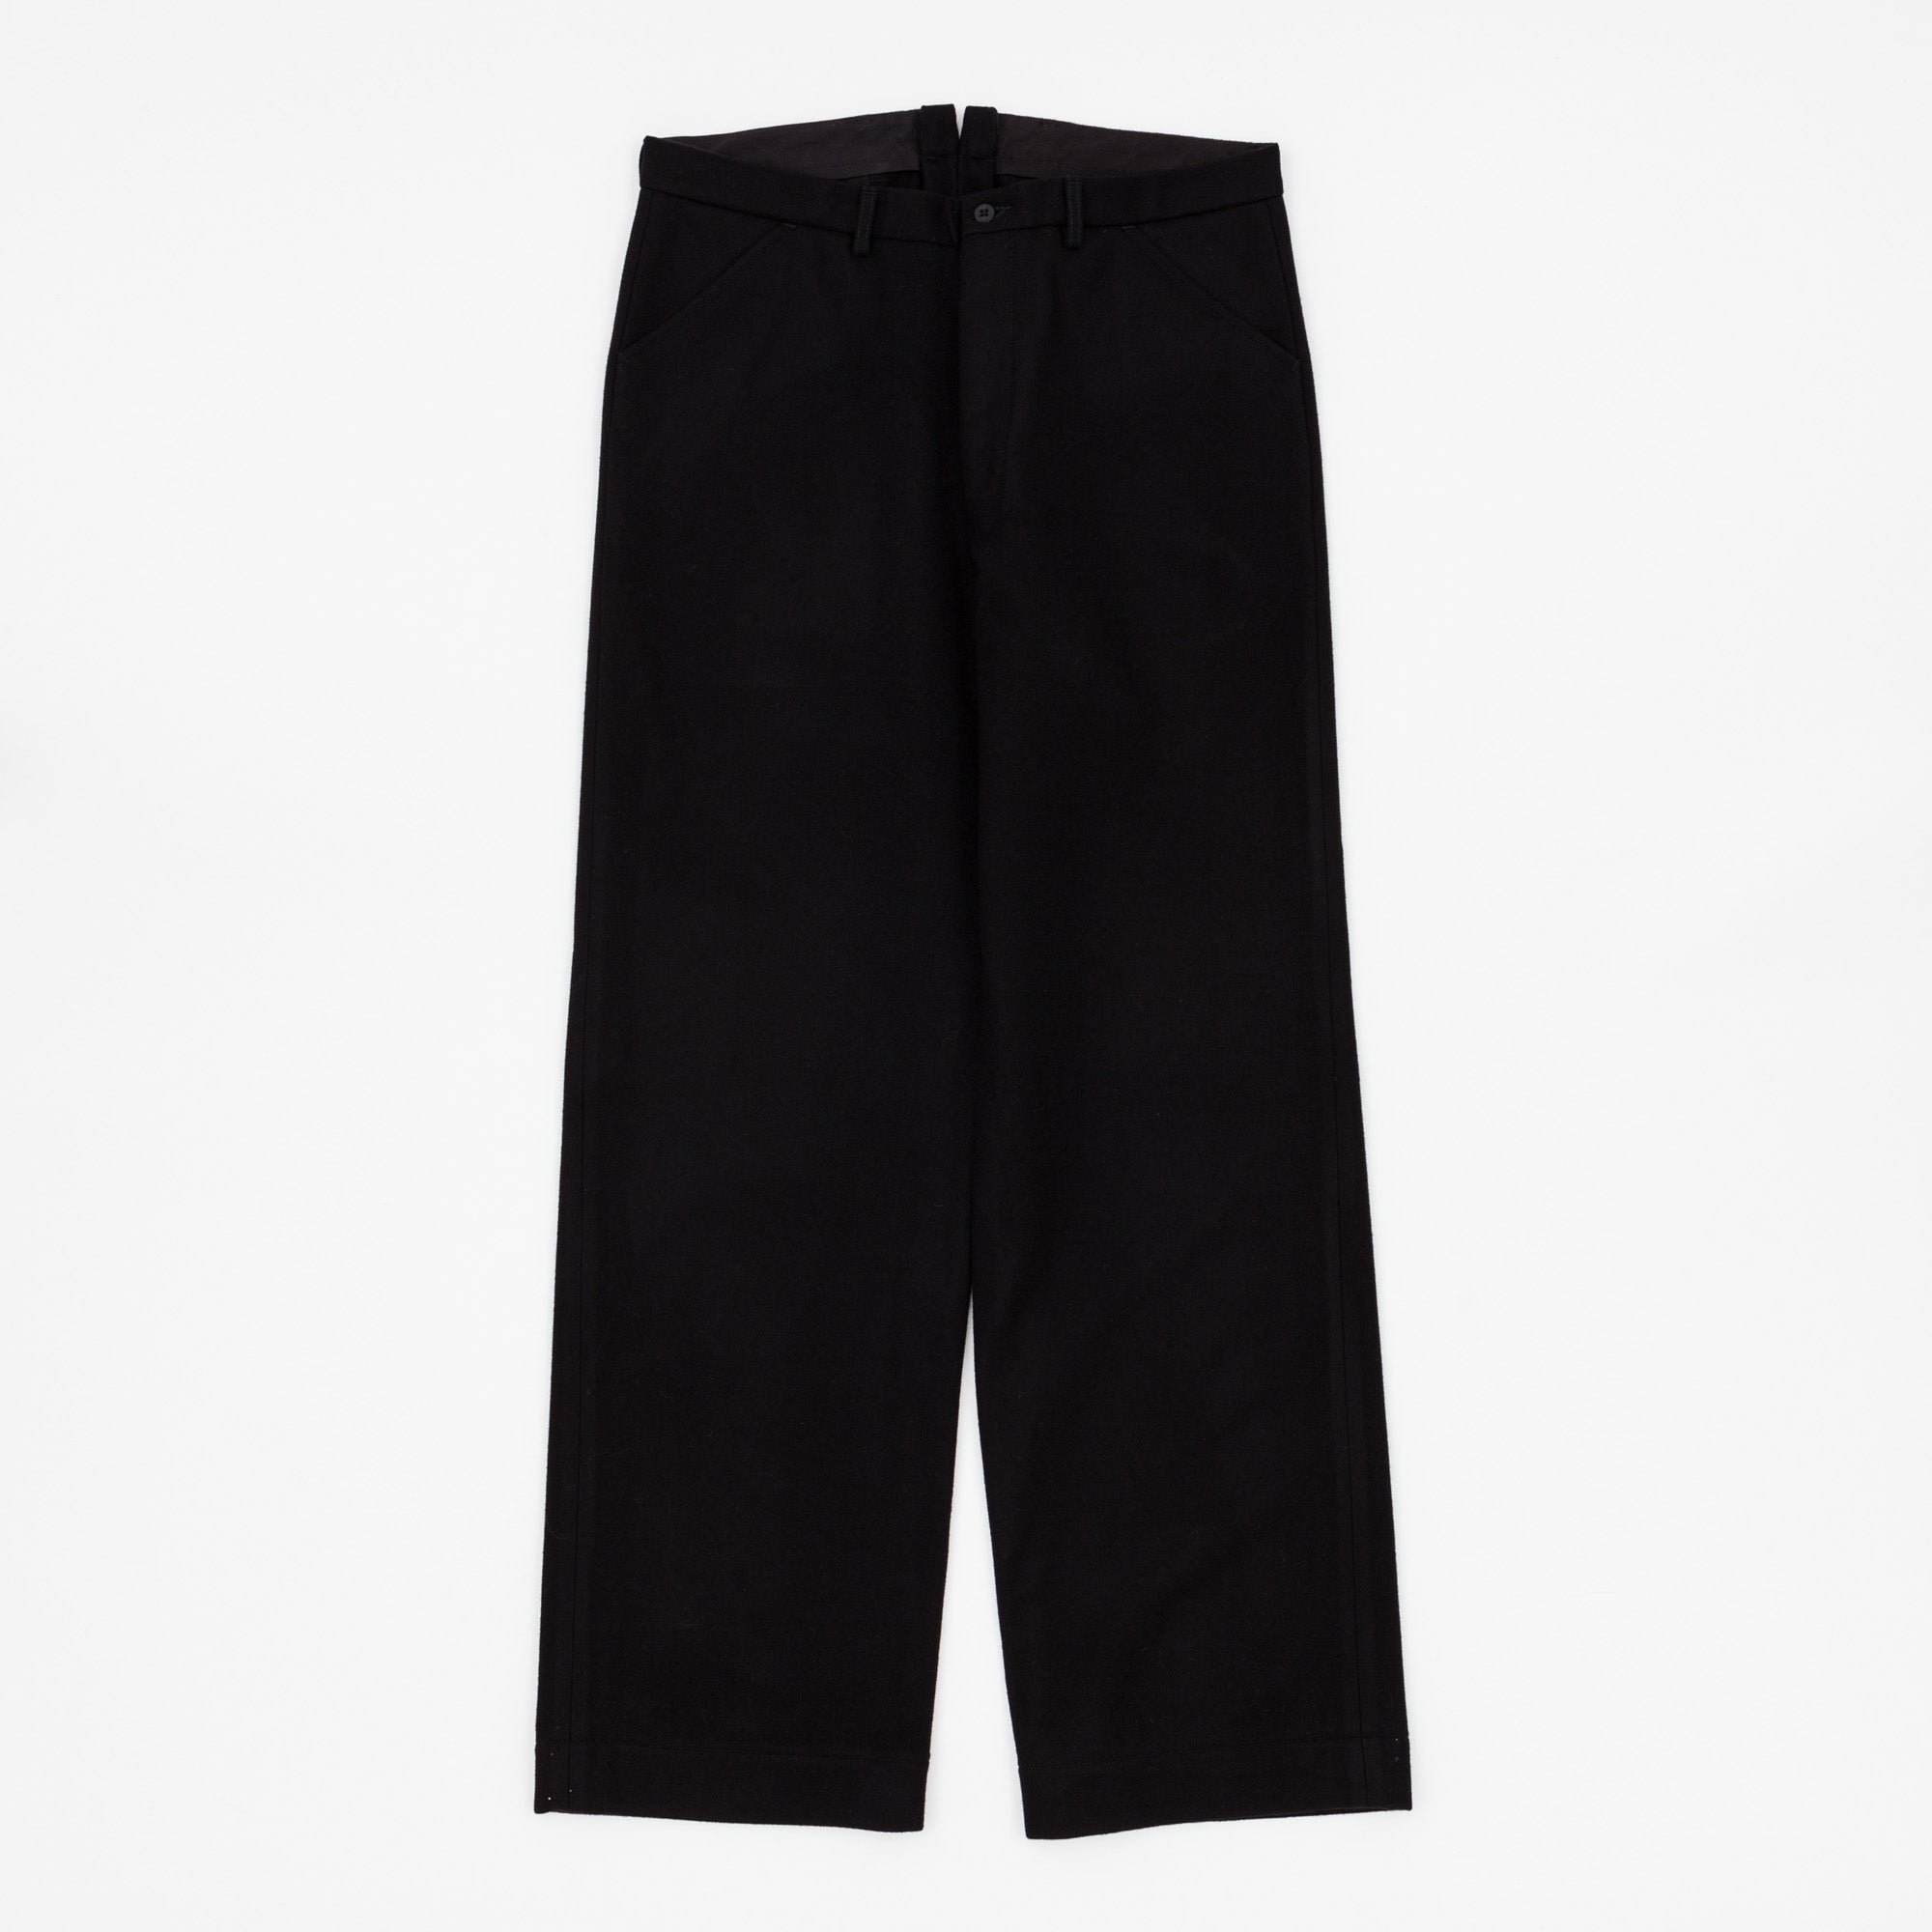 U.S.N. Wool Trousers